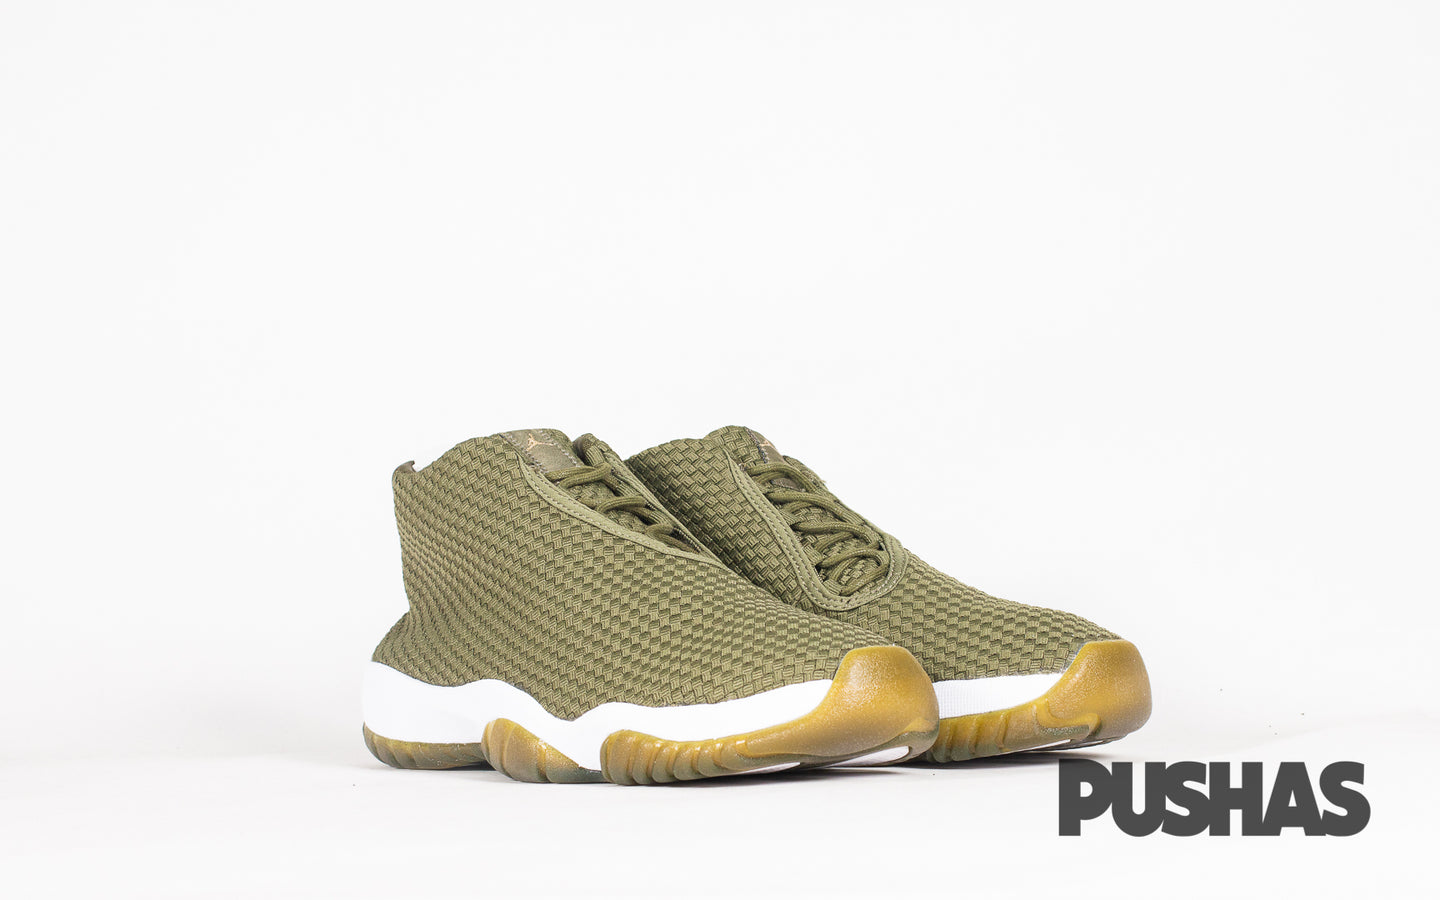 pushas-nike-Air-Jordan-Future-Iguana